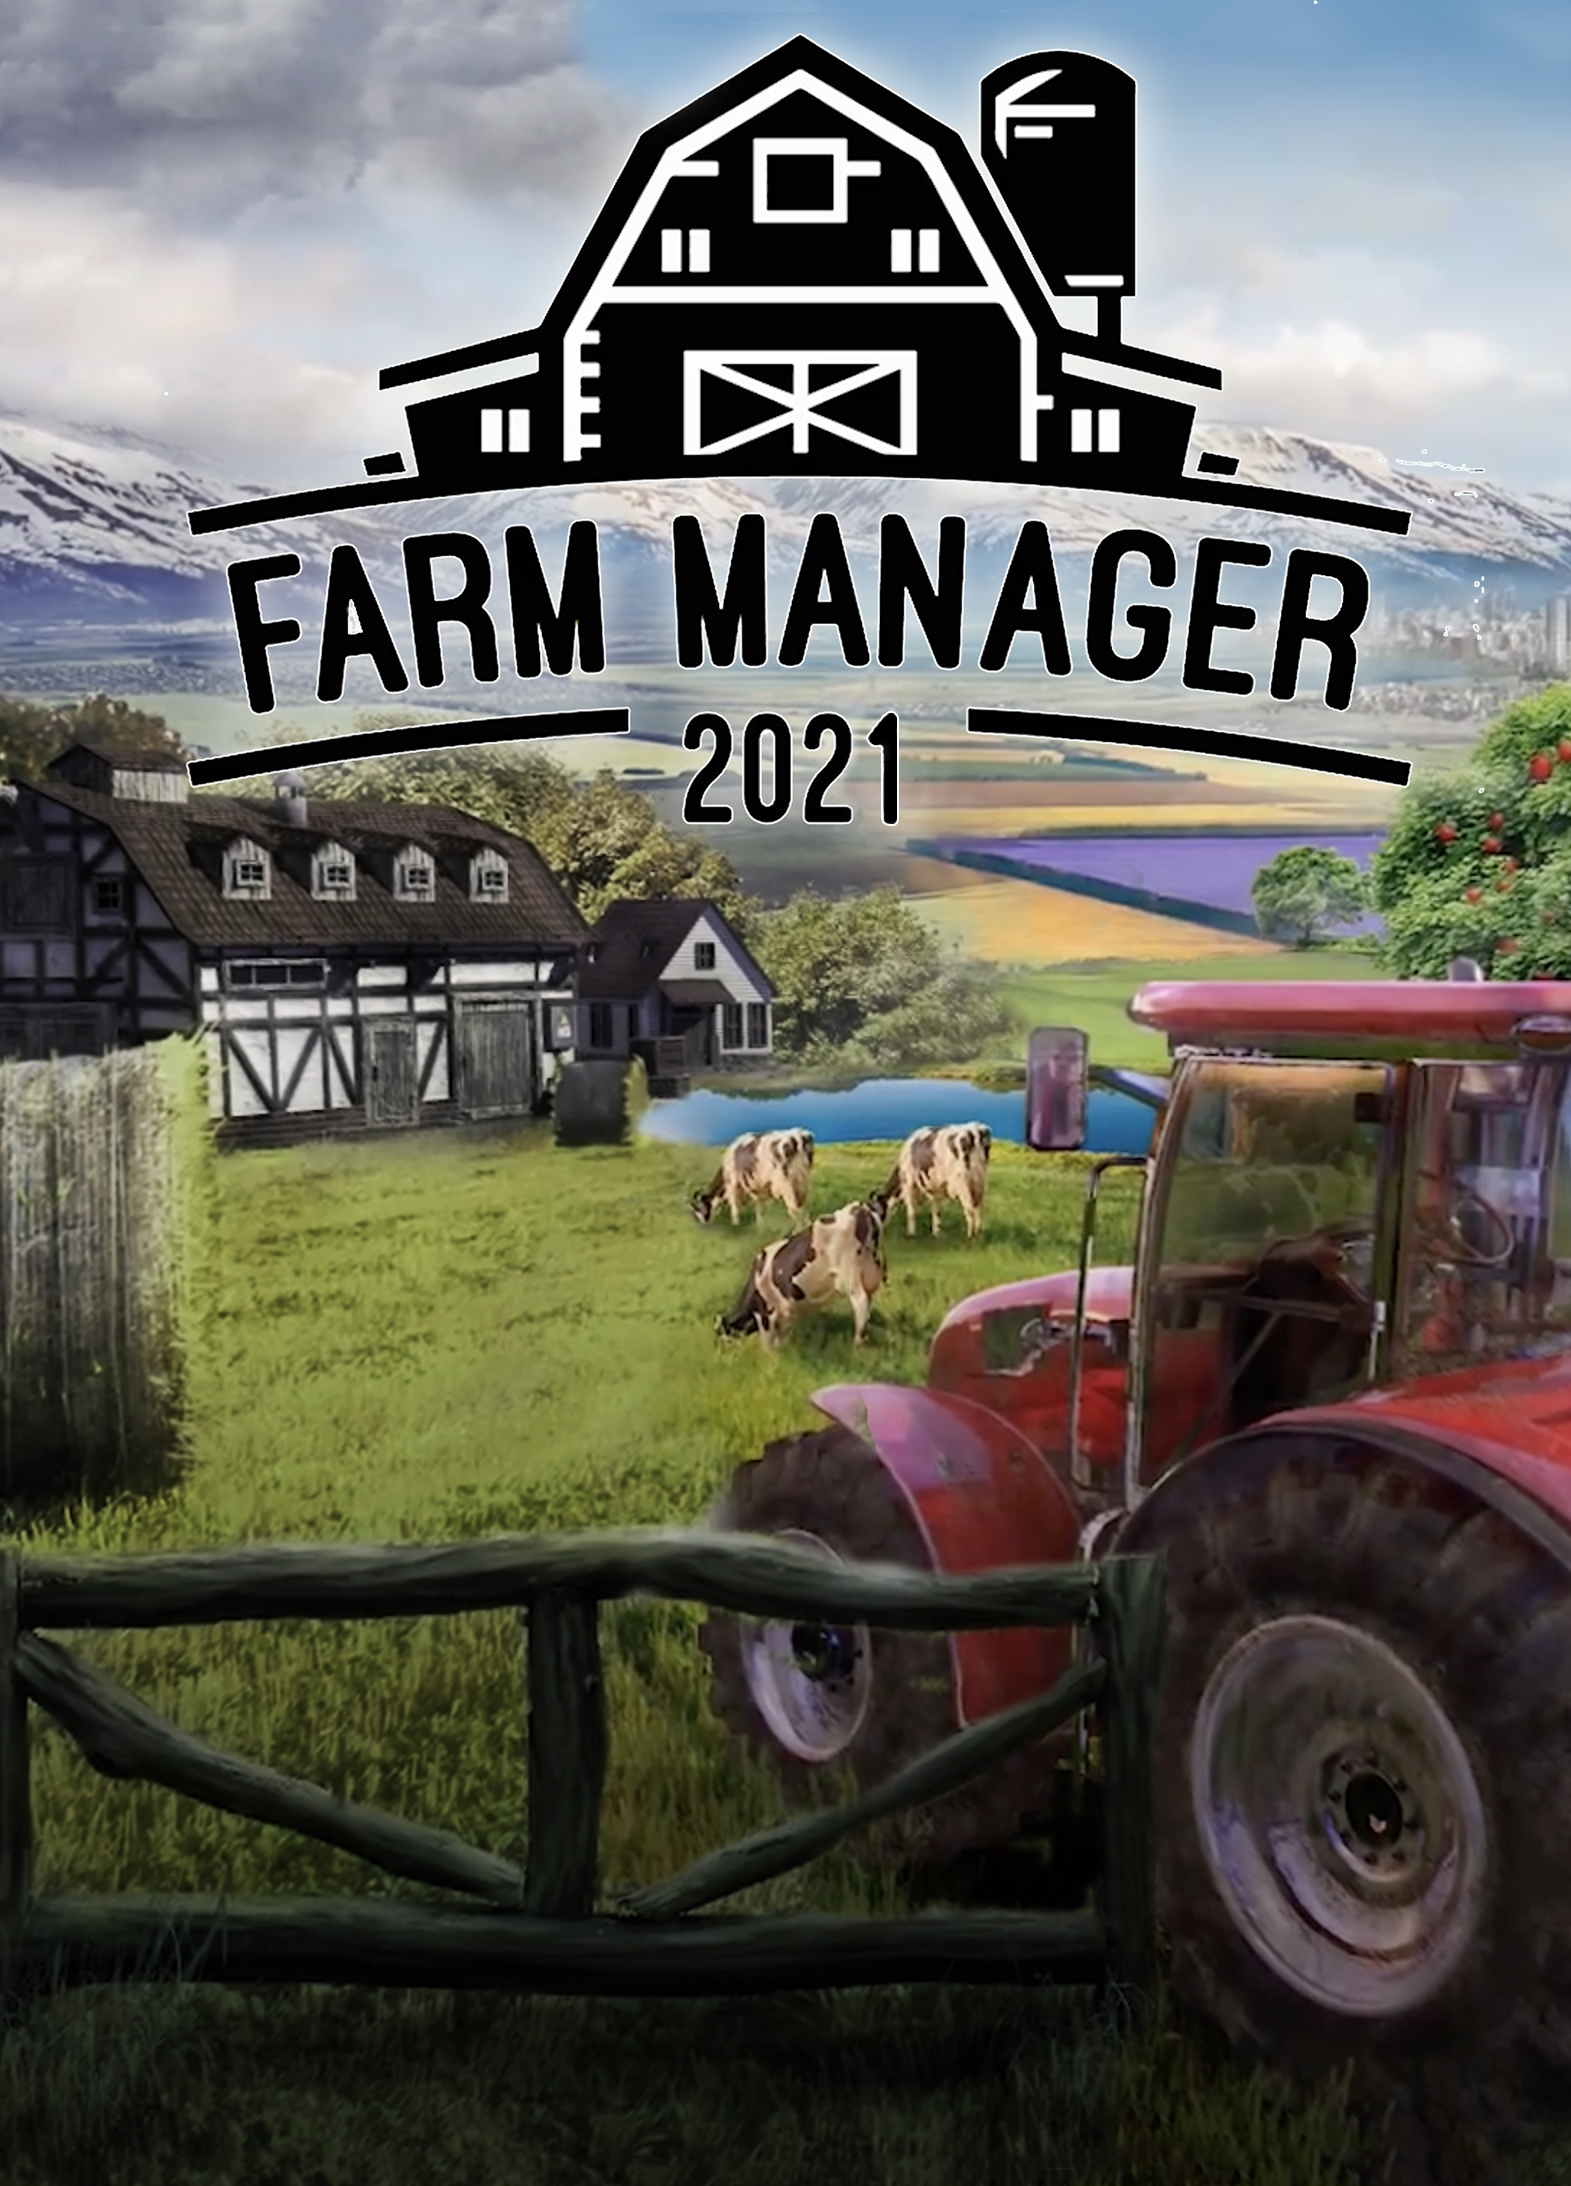 Farm-Manager-2021-Serial-Key-Generator